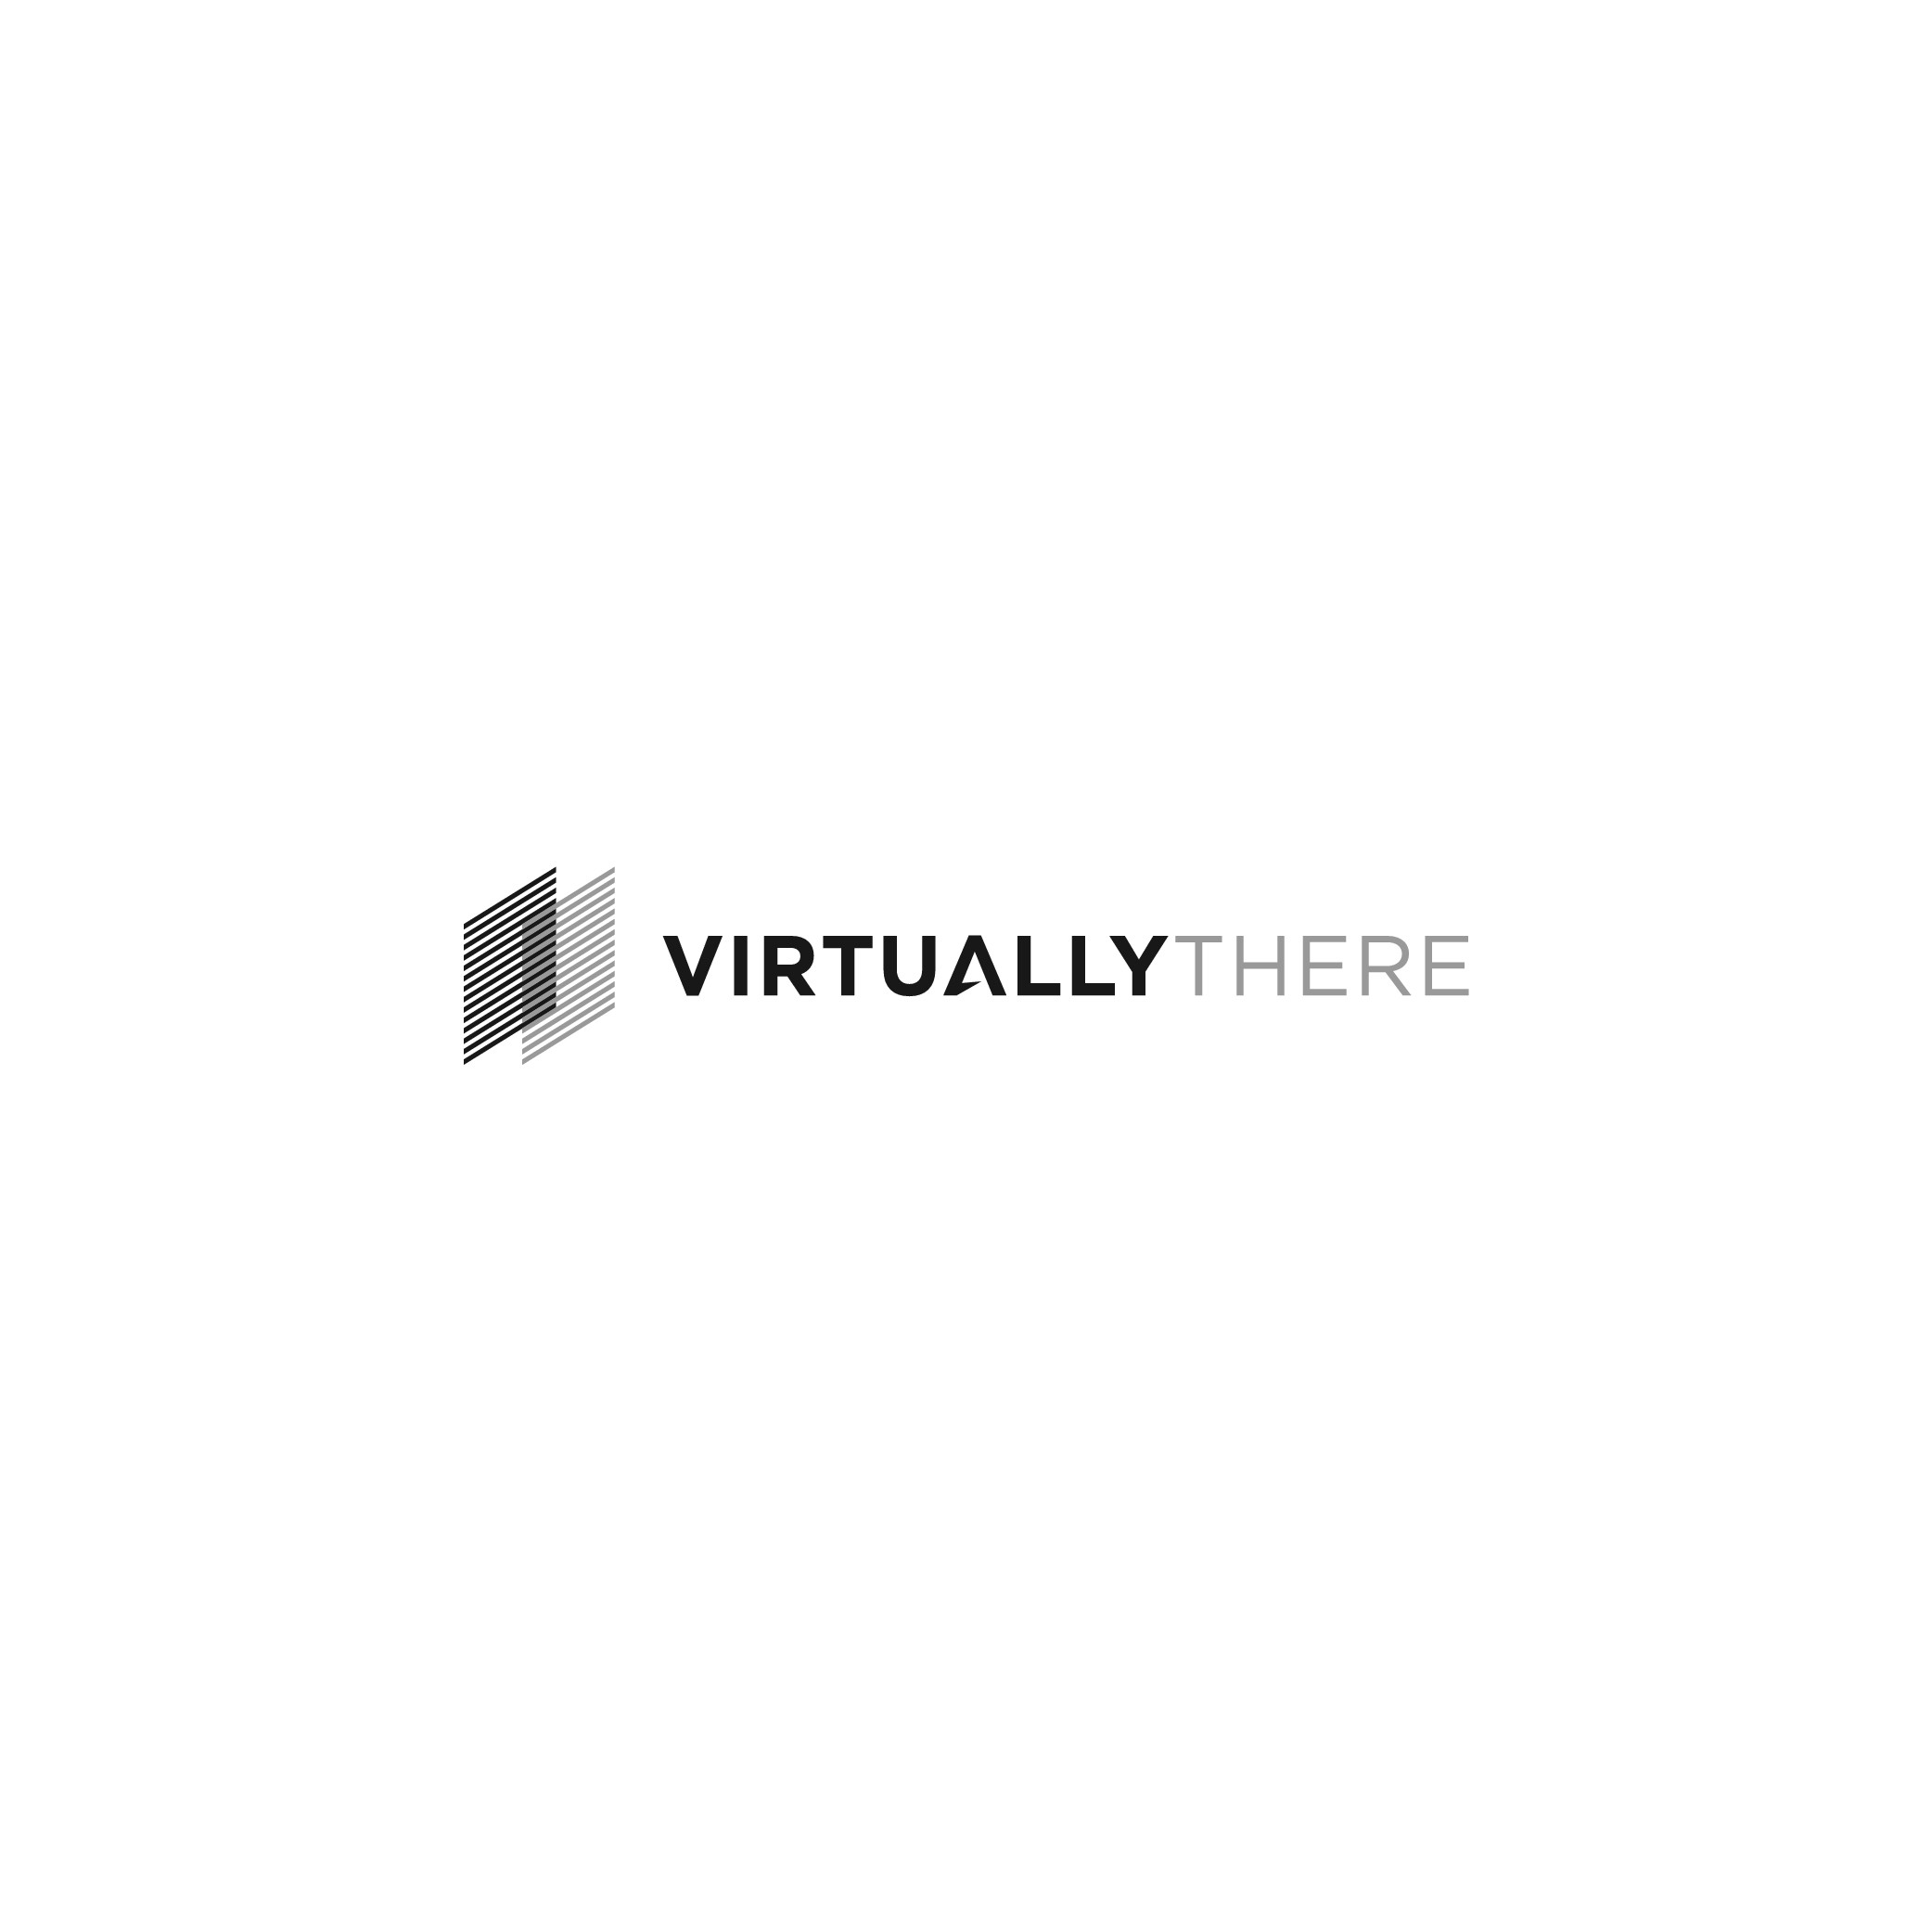 Professional logo for VR Startup VirtuallyThere